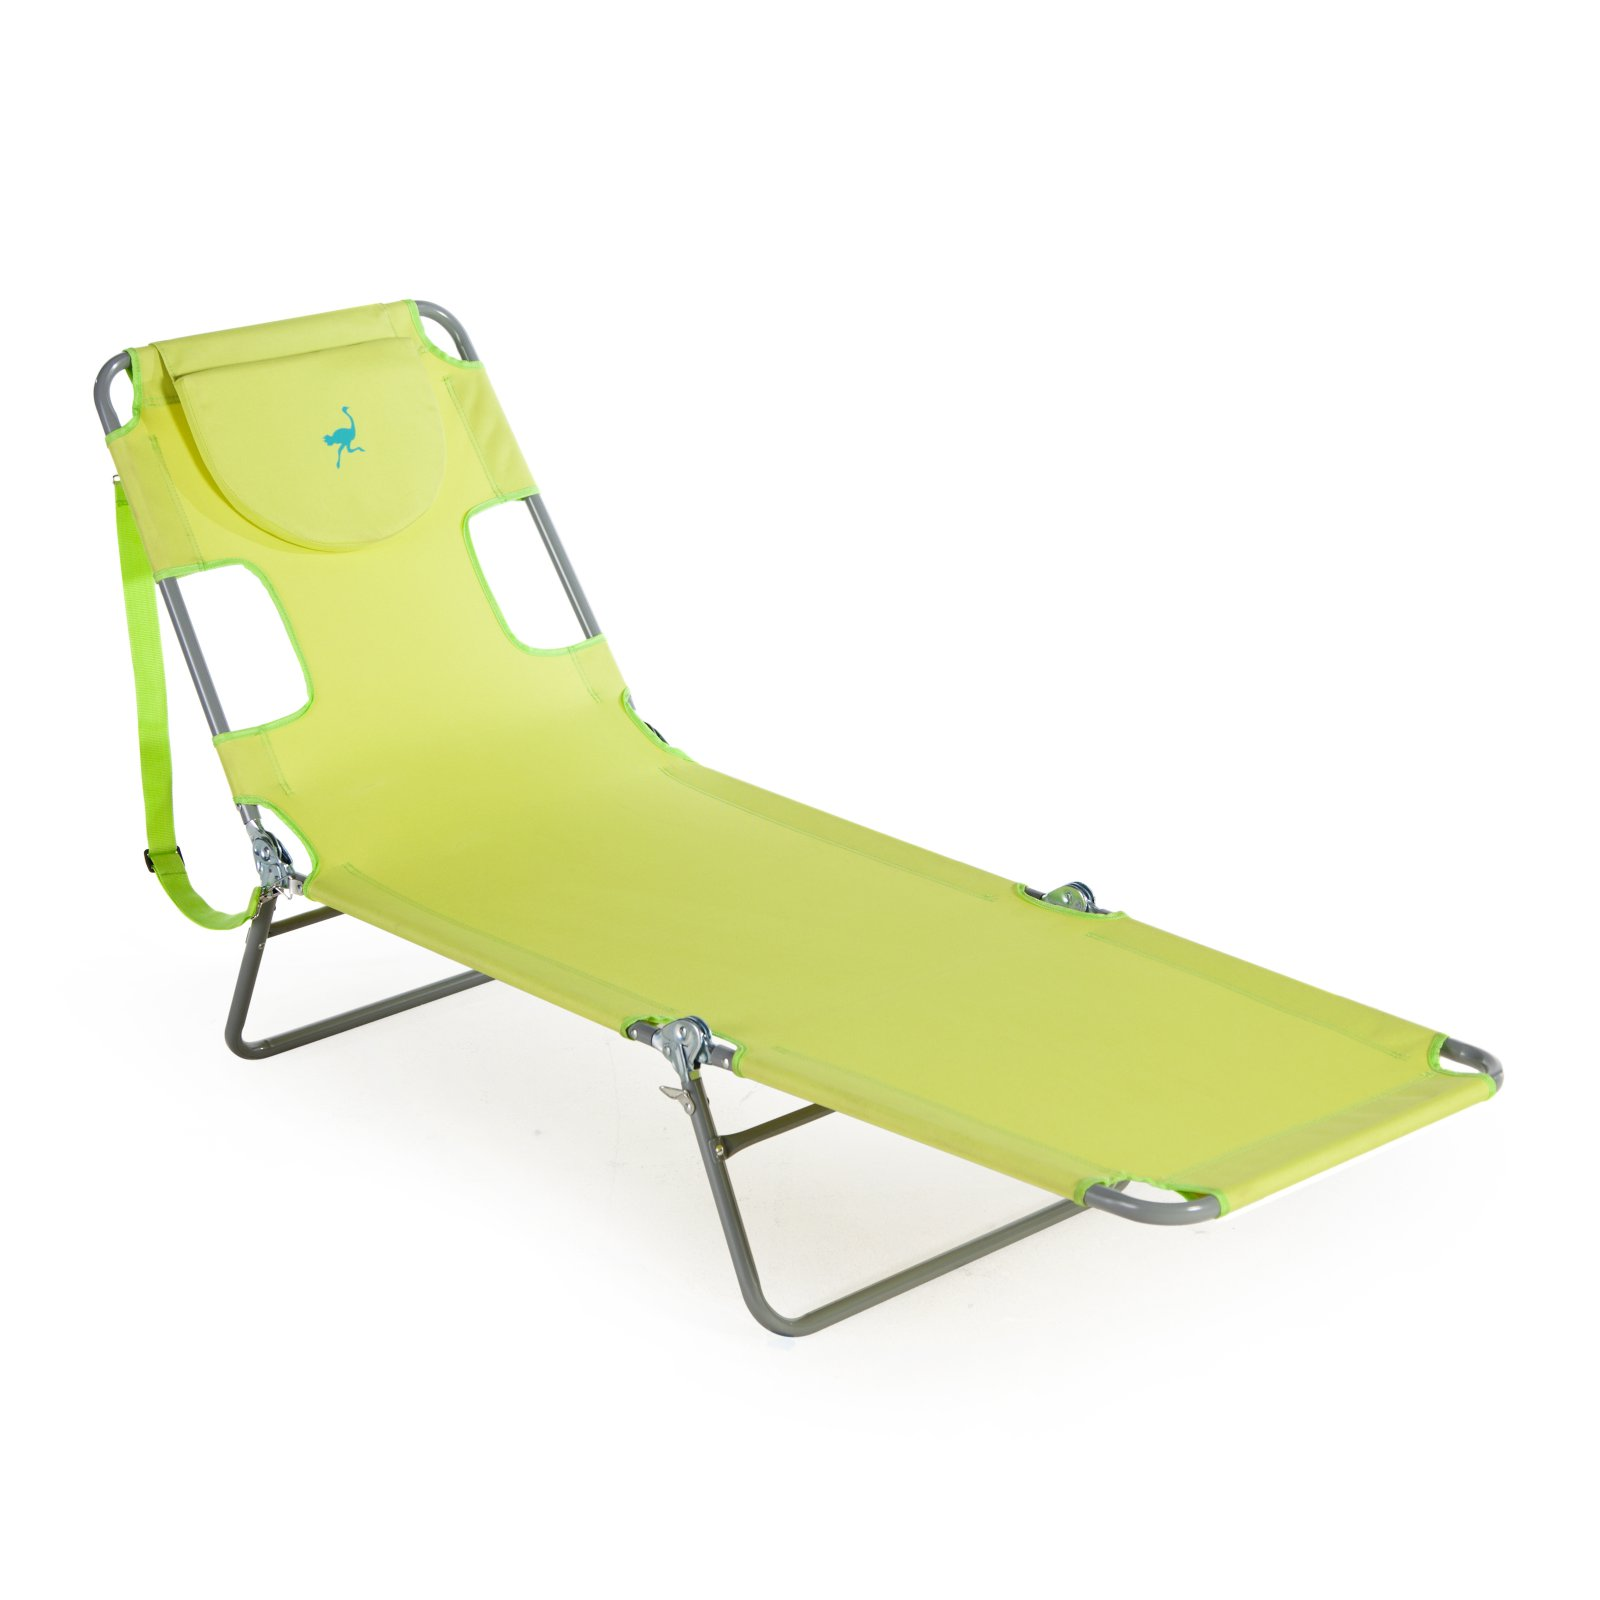 Ostrich Folding Chaise Lounge - Walmart.com on ostrich chaise lounge green, ostrich patio chaise lounge, ostrich leather chair, ostrich chaise lounge beach,